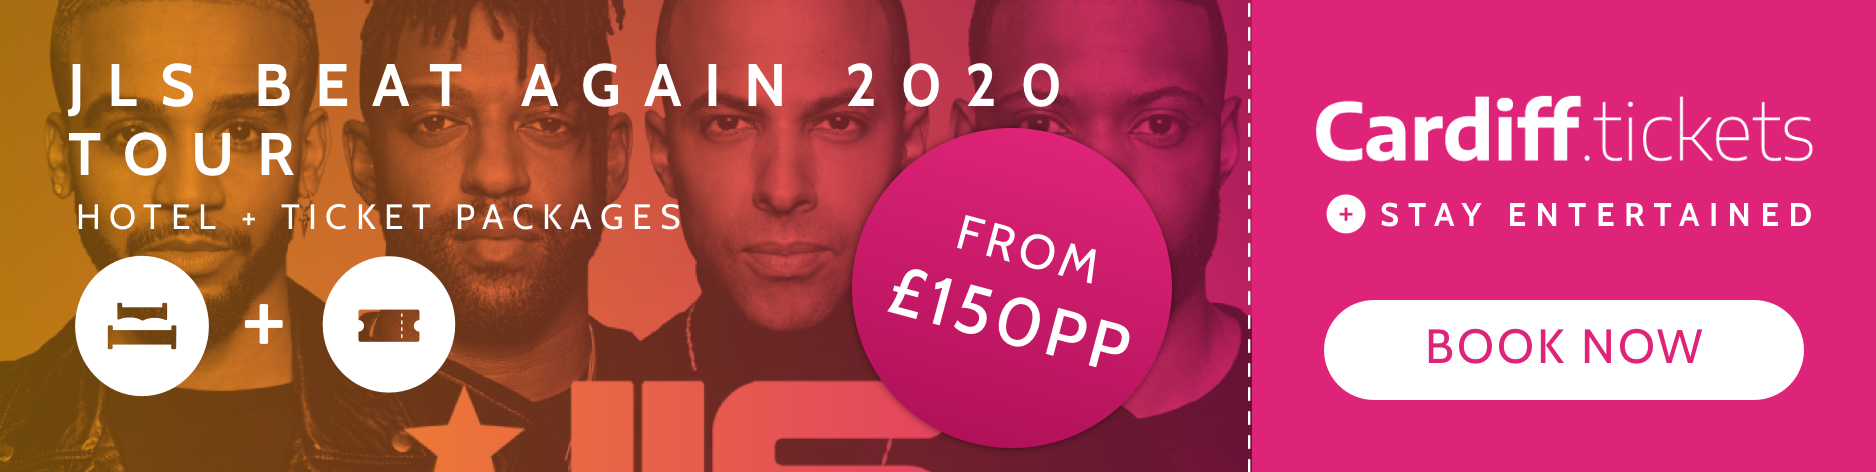 JLS Beat Again 2020 Tour tickets and hotel package